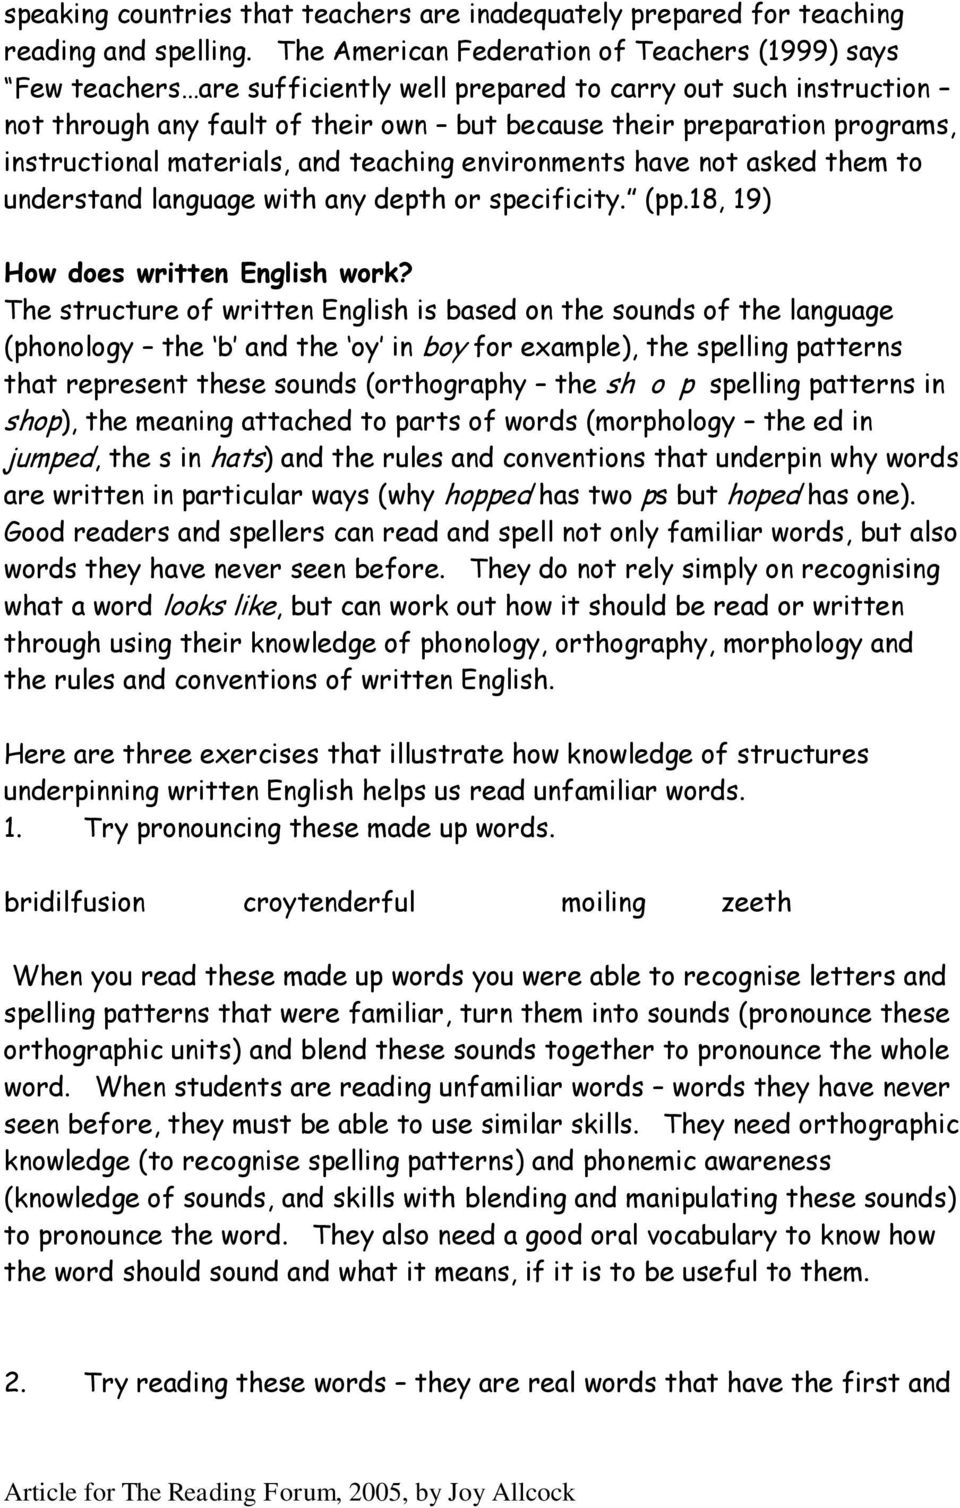 instructional materials, and teaching environments have not asked them to understand language with any depth or specificity. (pp.18, 19) How does written English work?